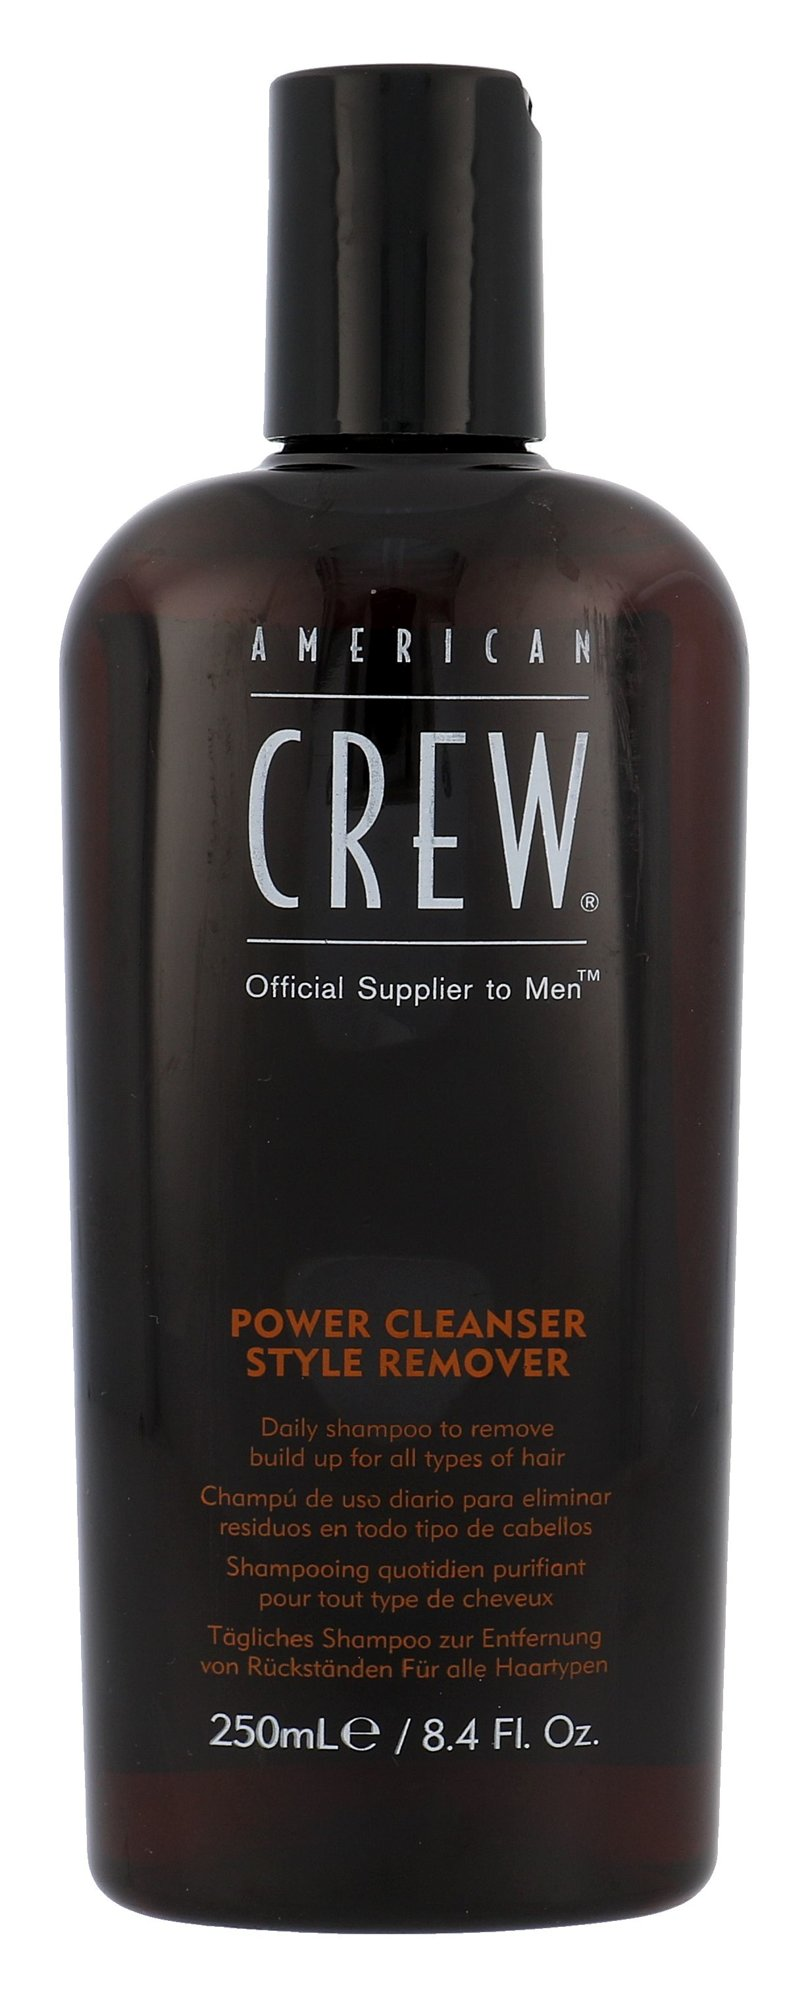 American Crew Classic Shampoo 250ml  Power Cleanser Style Remover